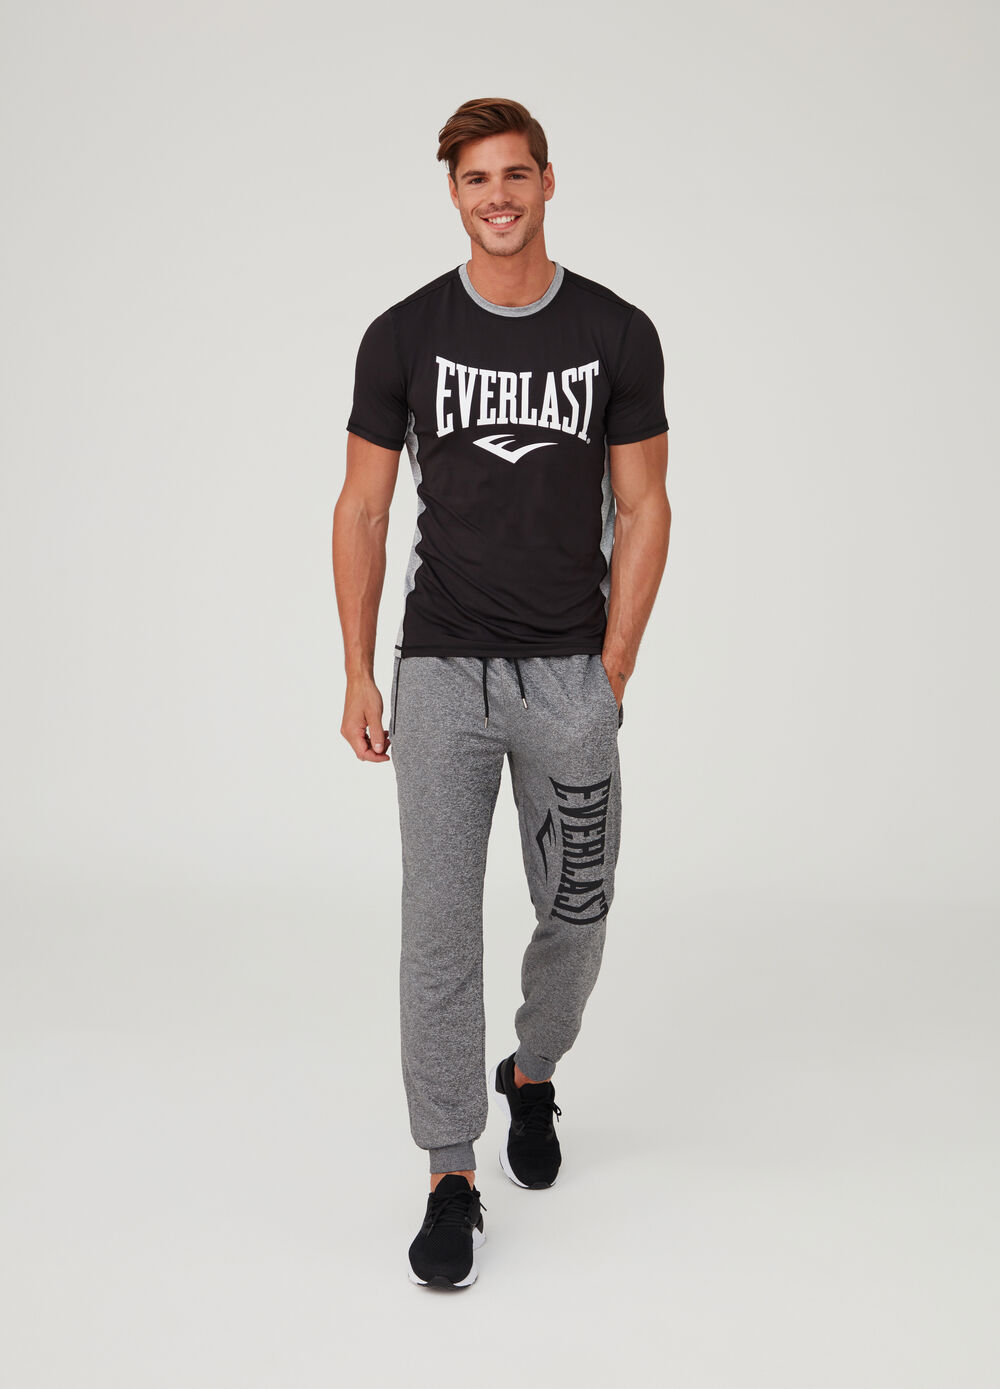 Everlast gym trousers with zip pockets